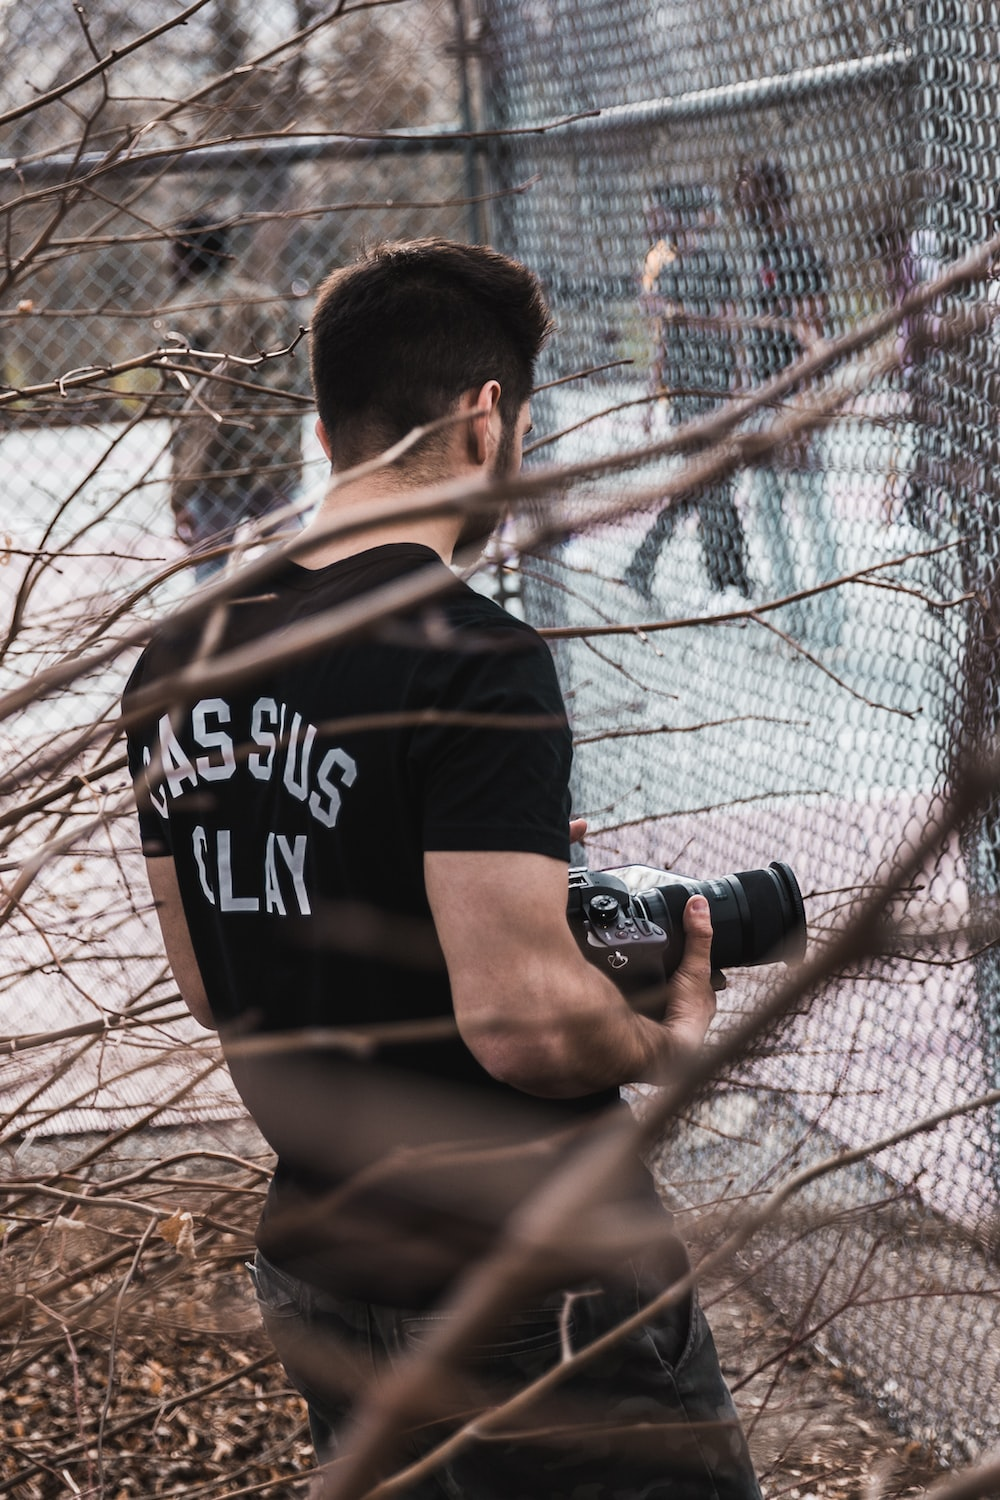 man holding camera standing near fence